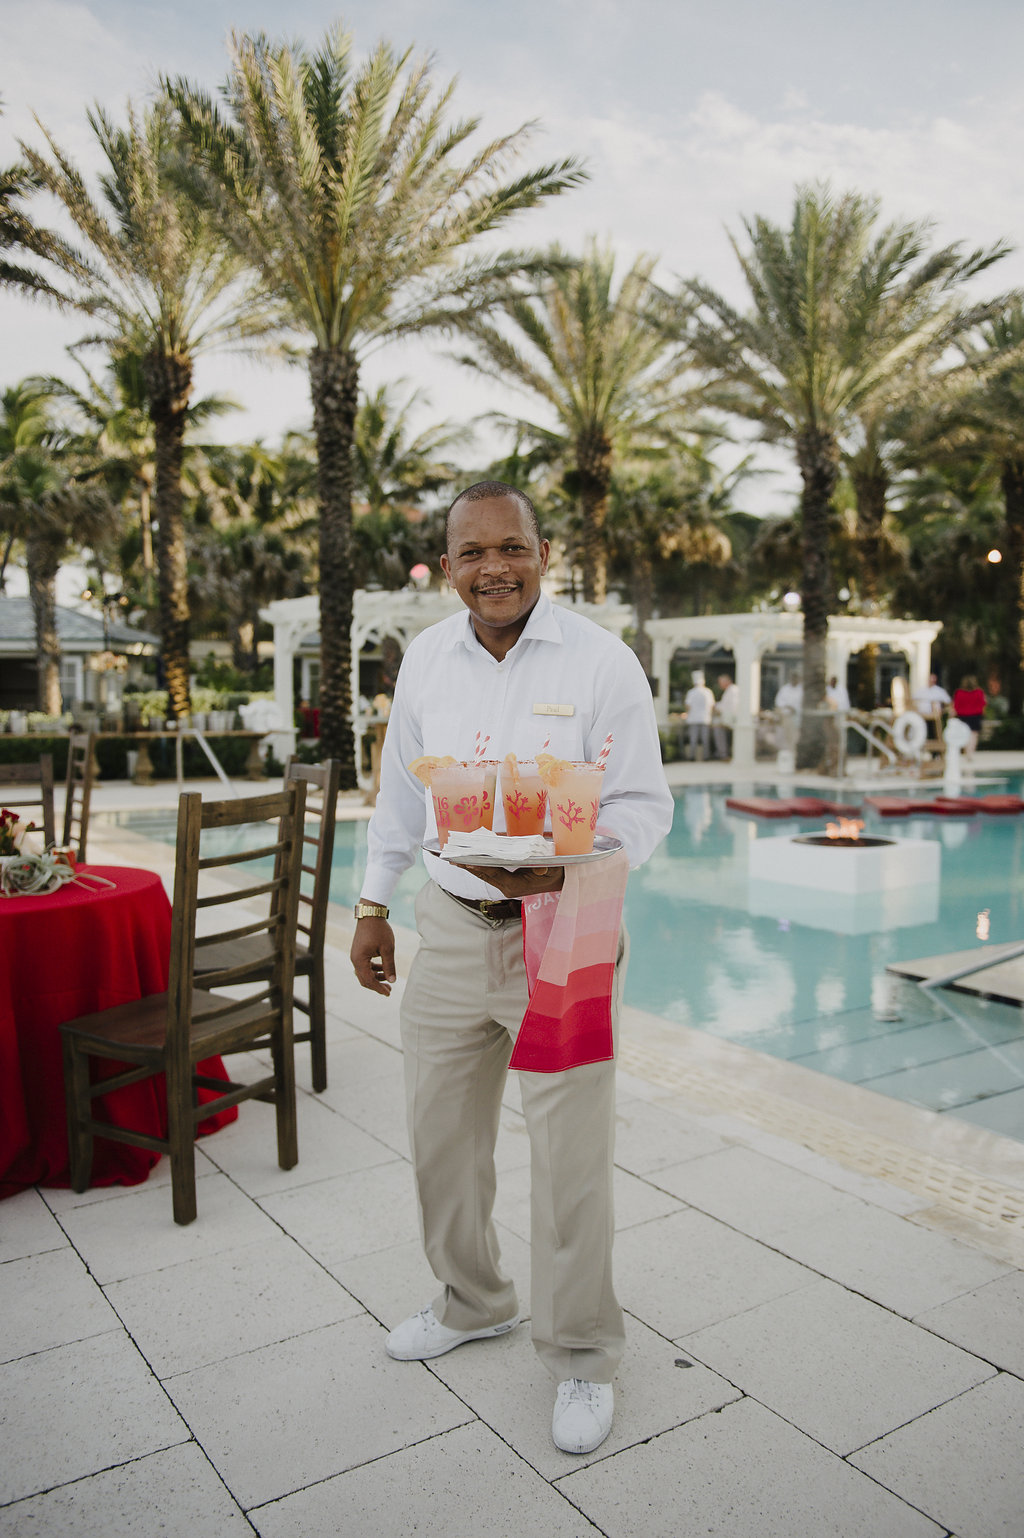 man holding a tray of beverages by a pool in late afternoon